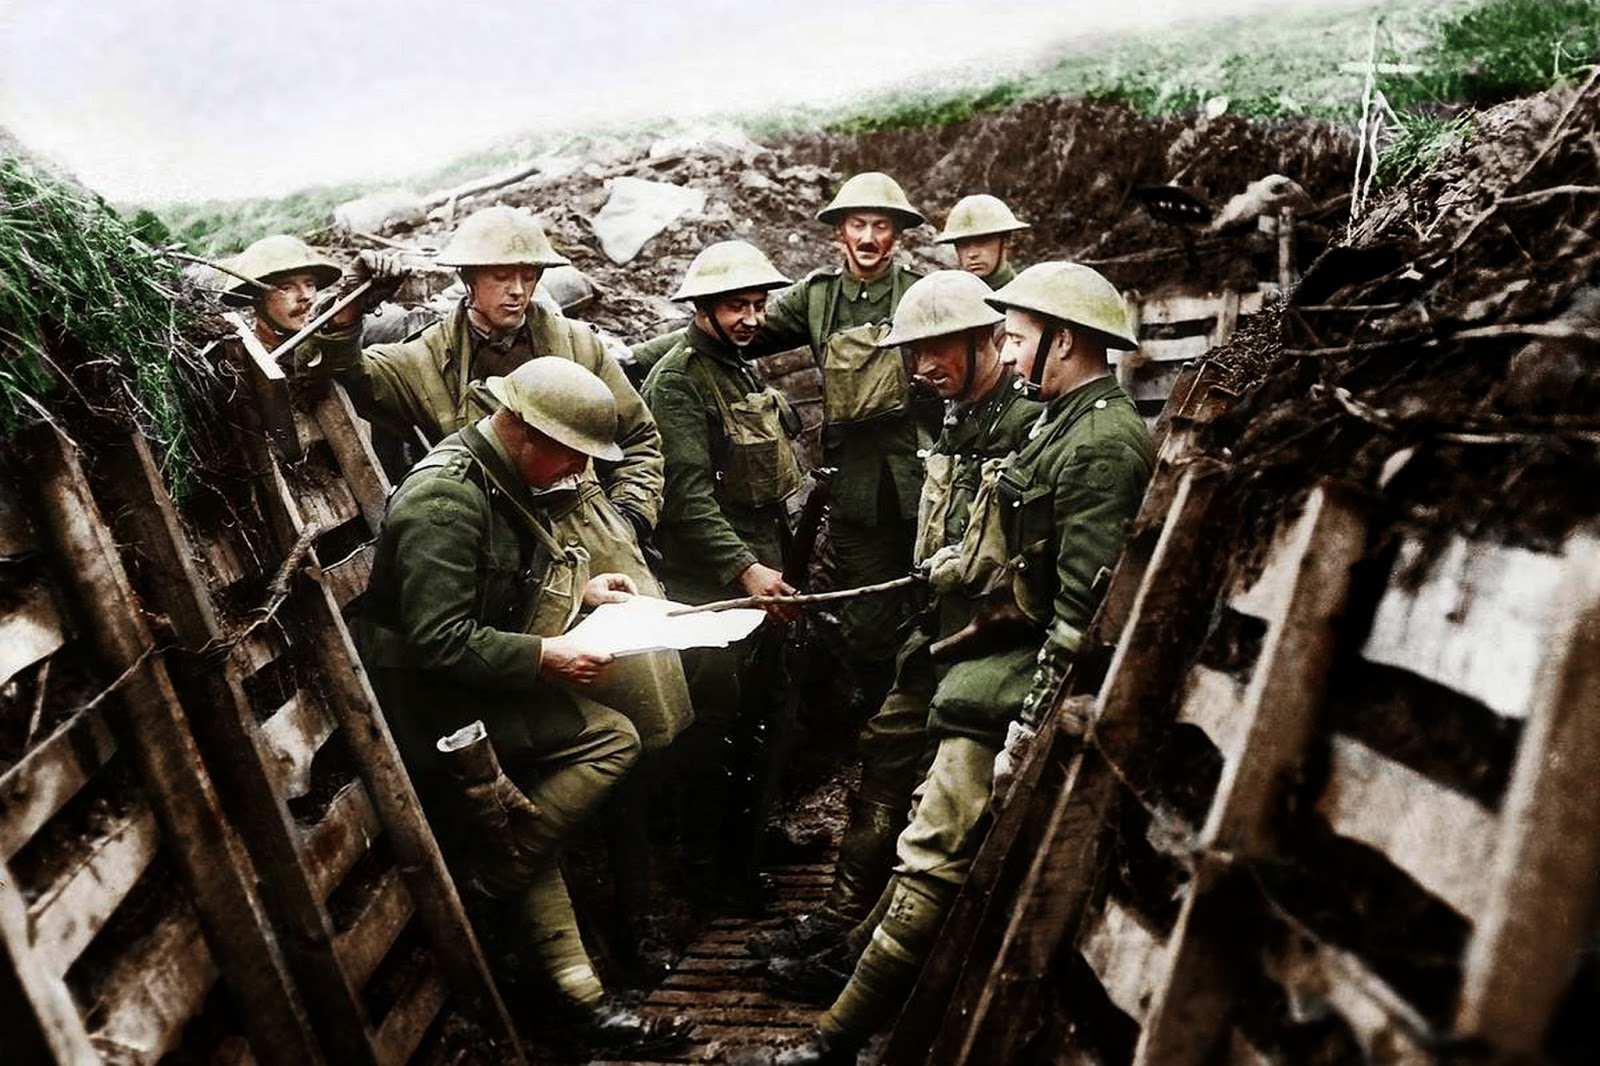 a history of the world war i Read fast facts from cnn about world war i, which lasted from 1914 to 1918.